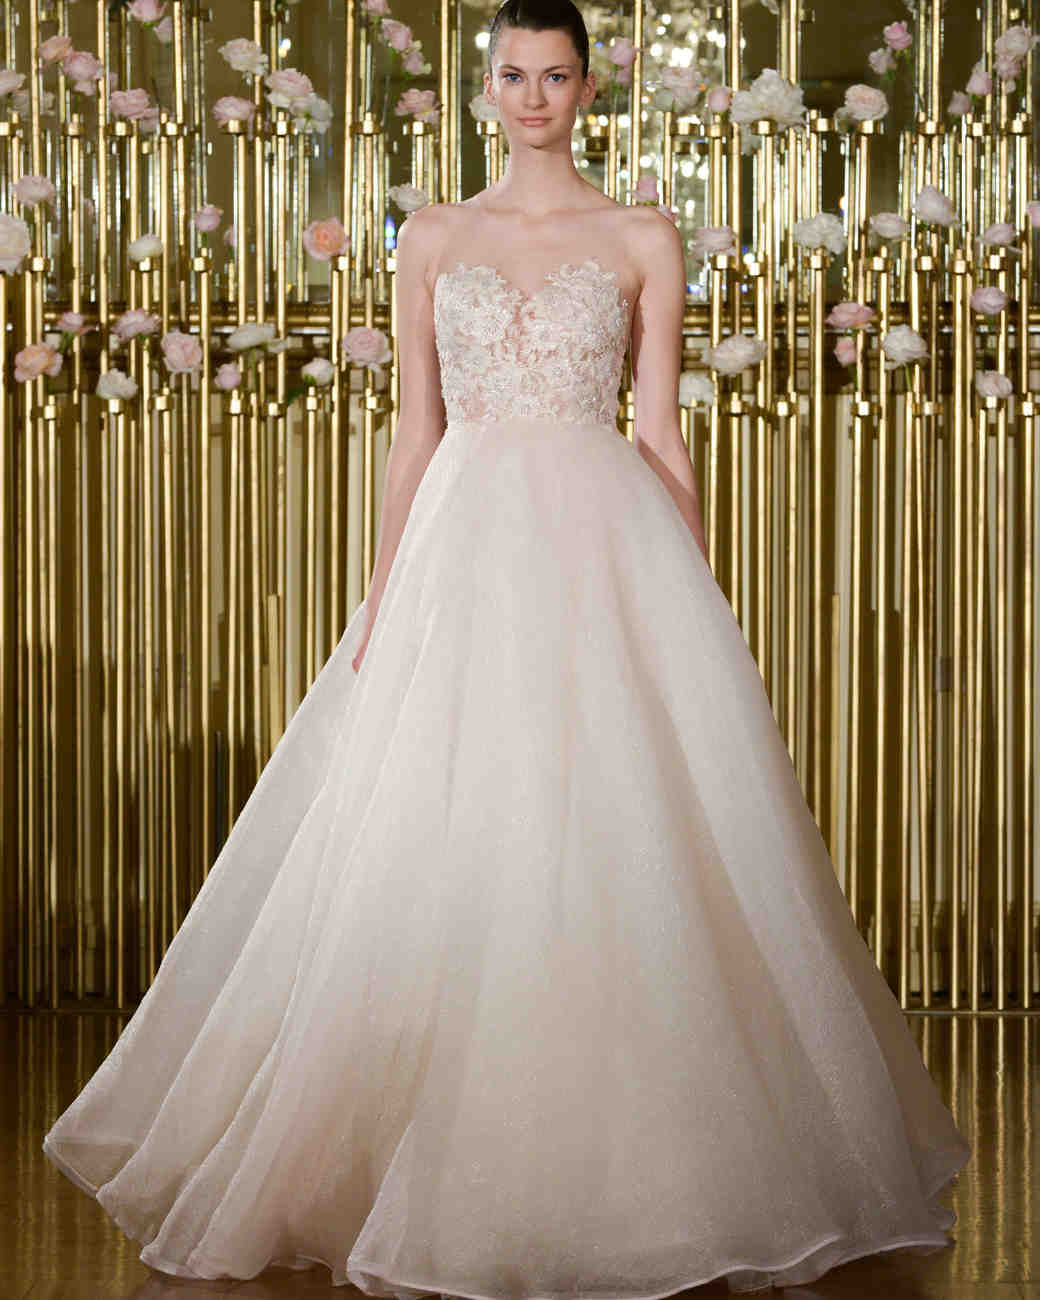 Strapless Francesca Miranda Ball Gown with Sweetheart Neckline Spring 2018